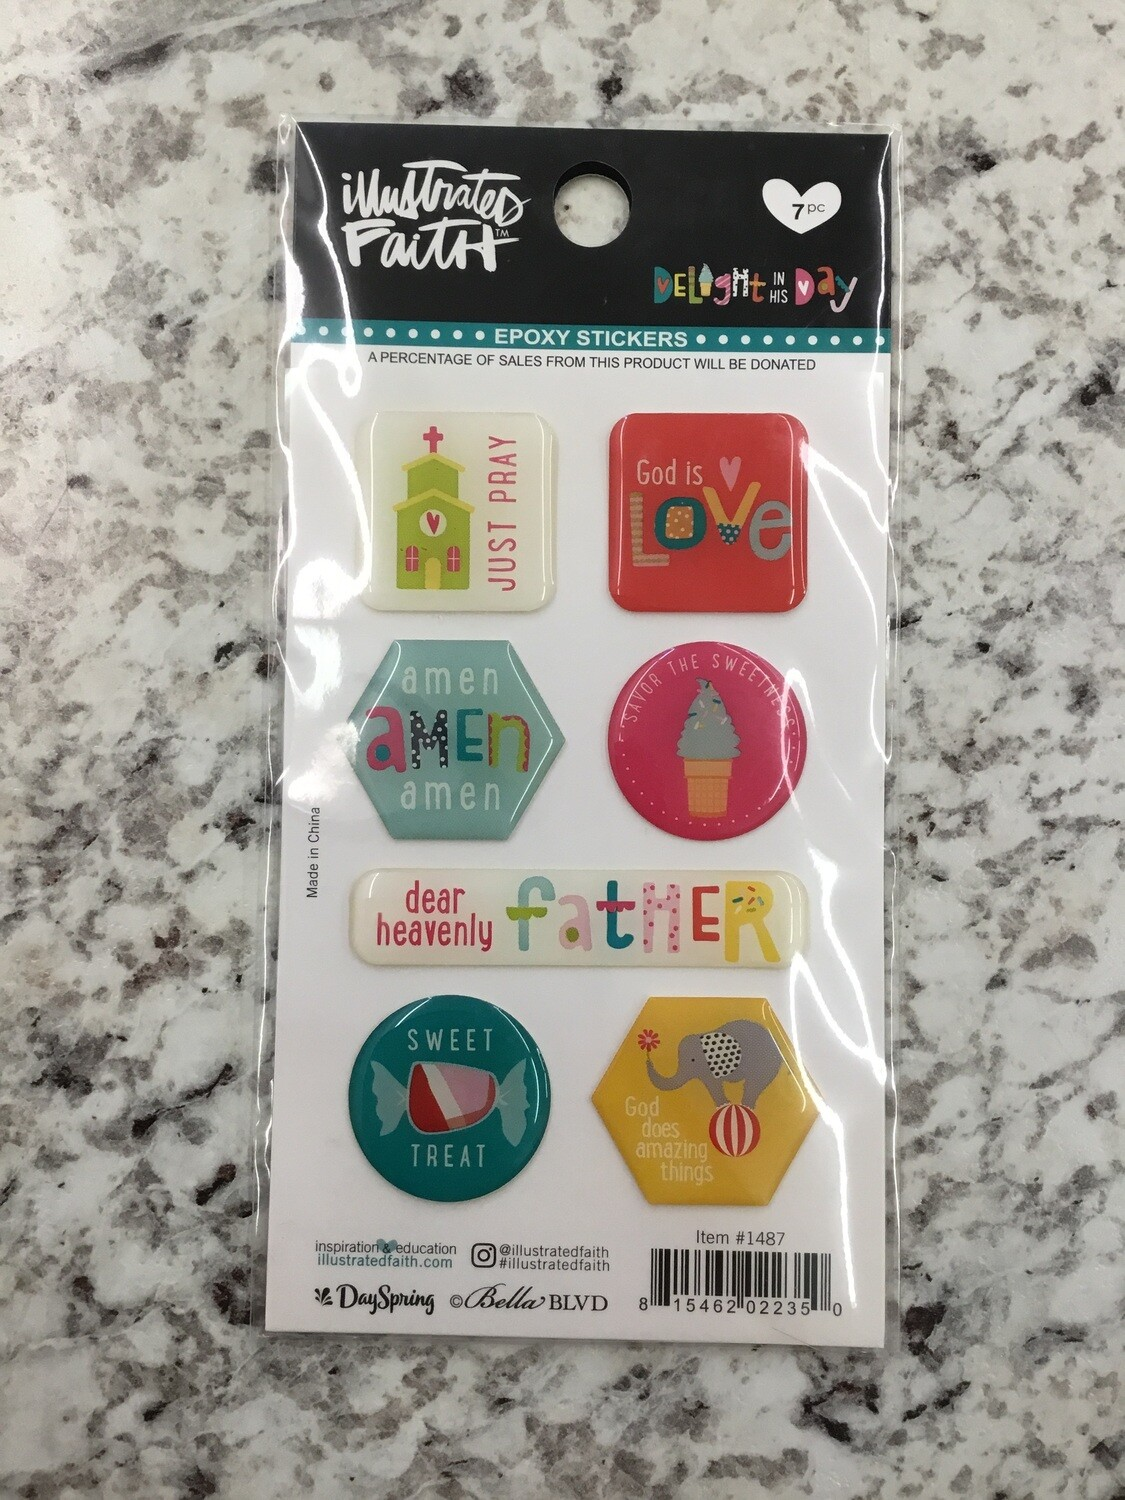 Delight In His Day Epoxy Stickers